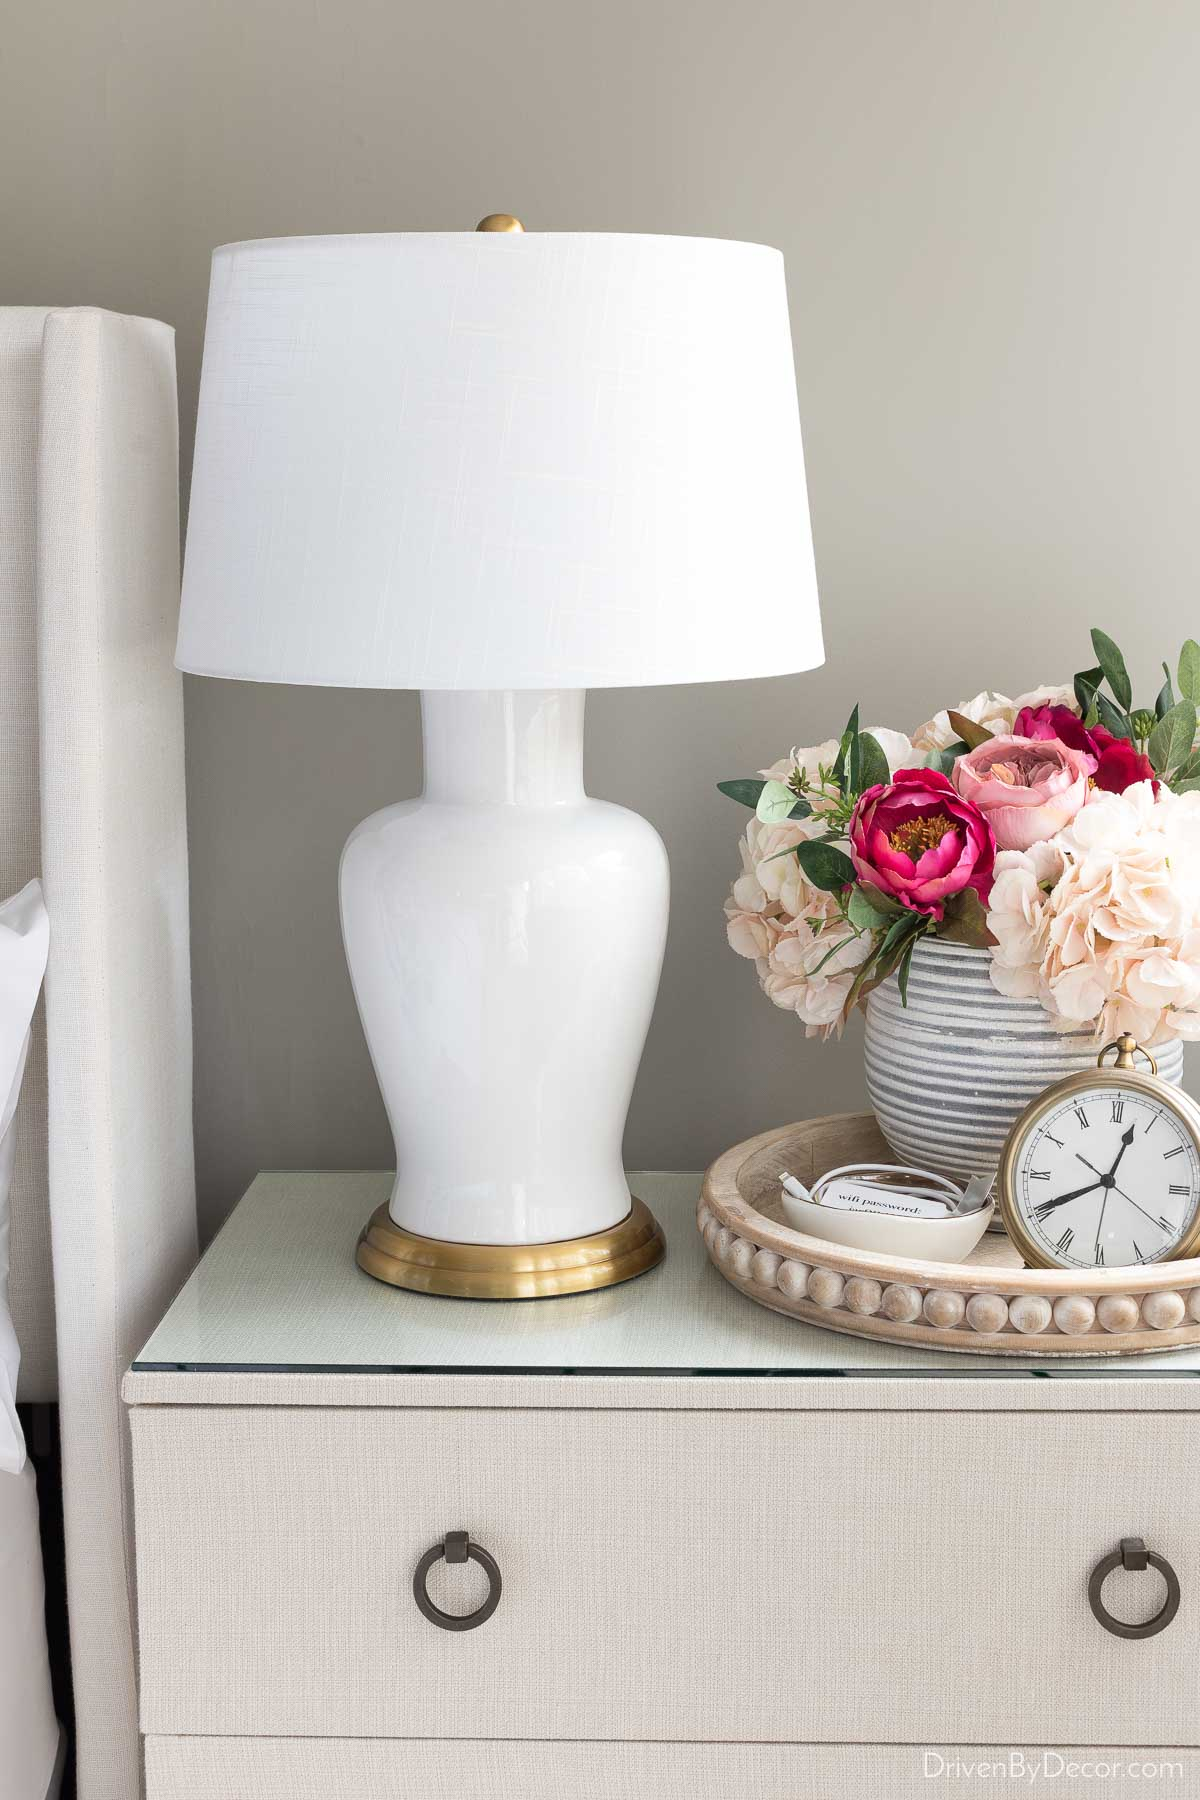 Love this classic ring pull on our dresser. Would be beautiful on a bathroom cabinet too!